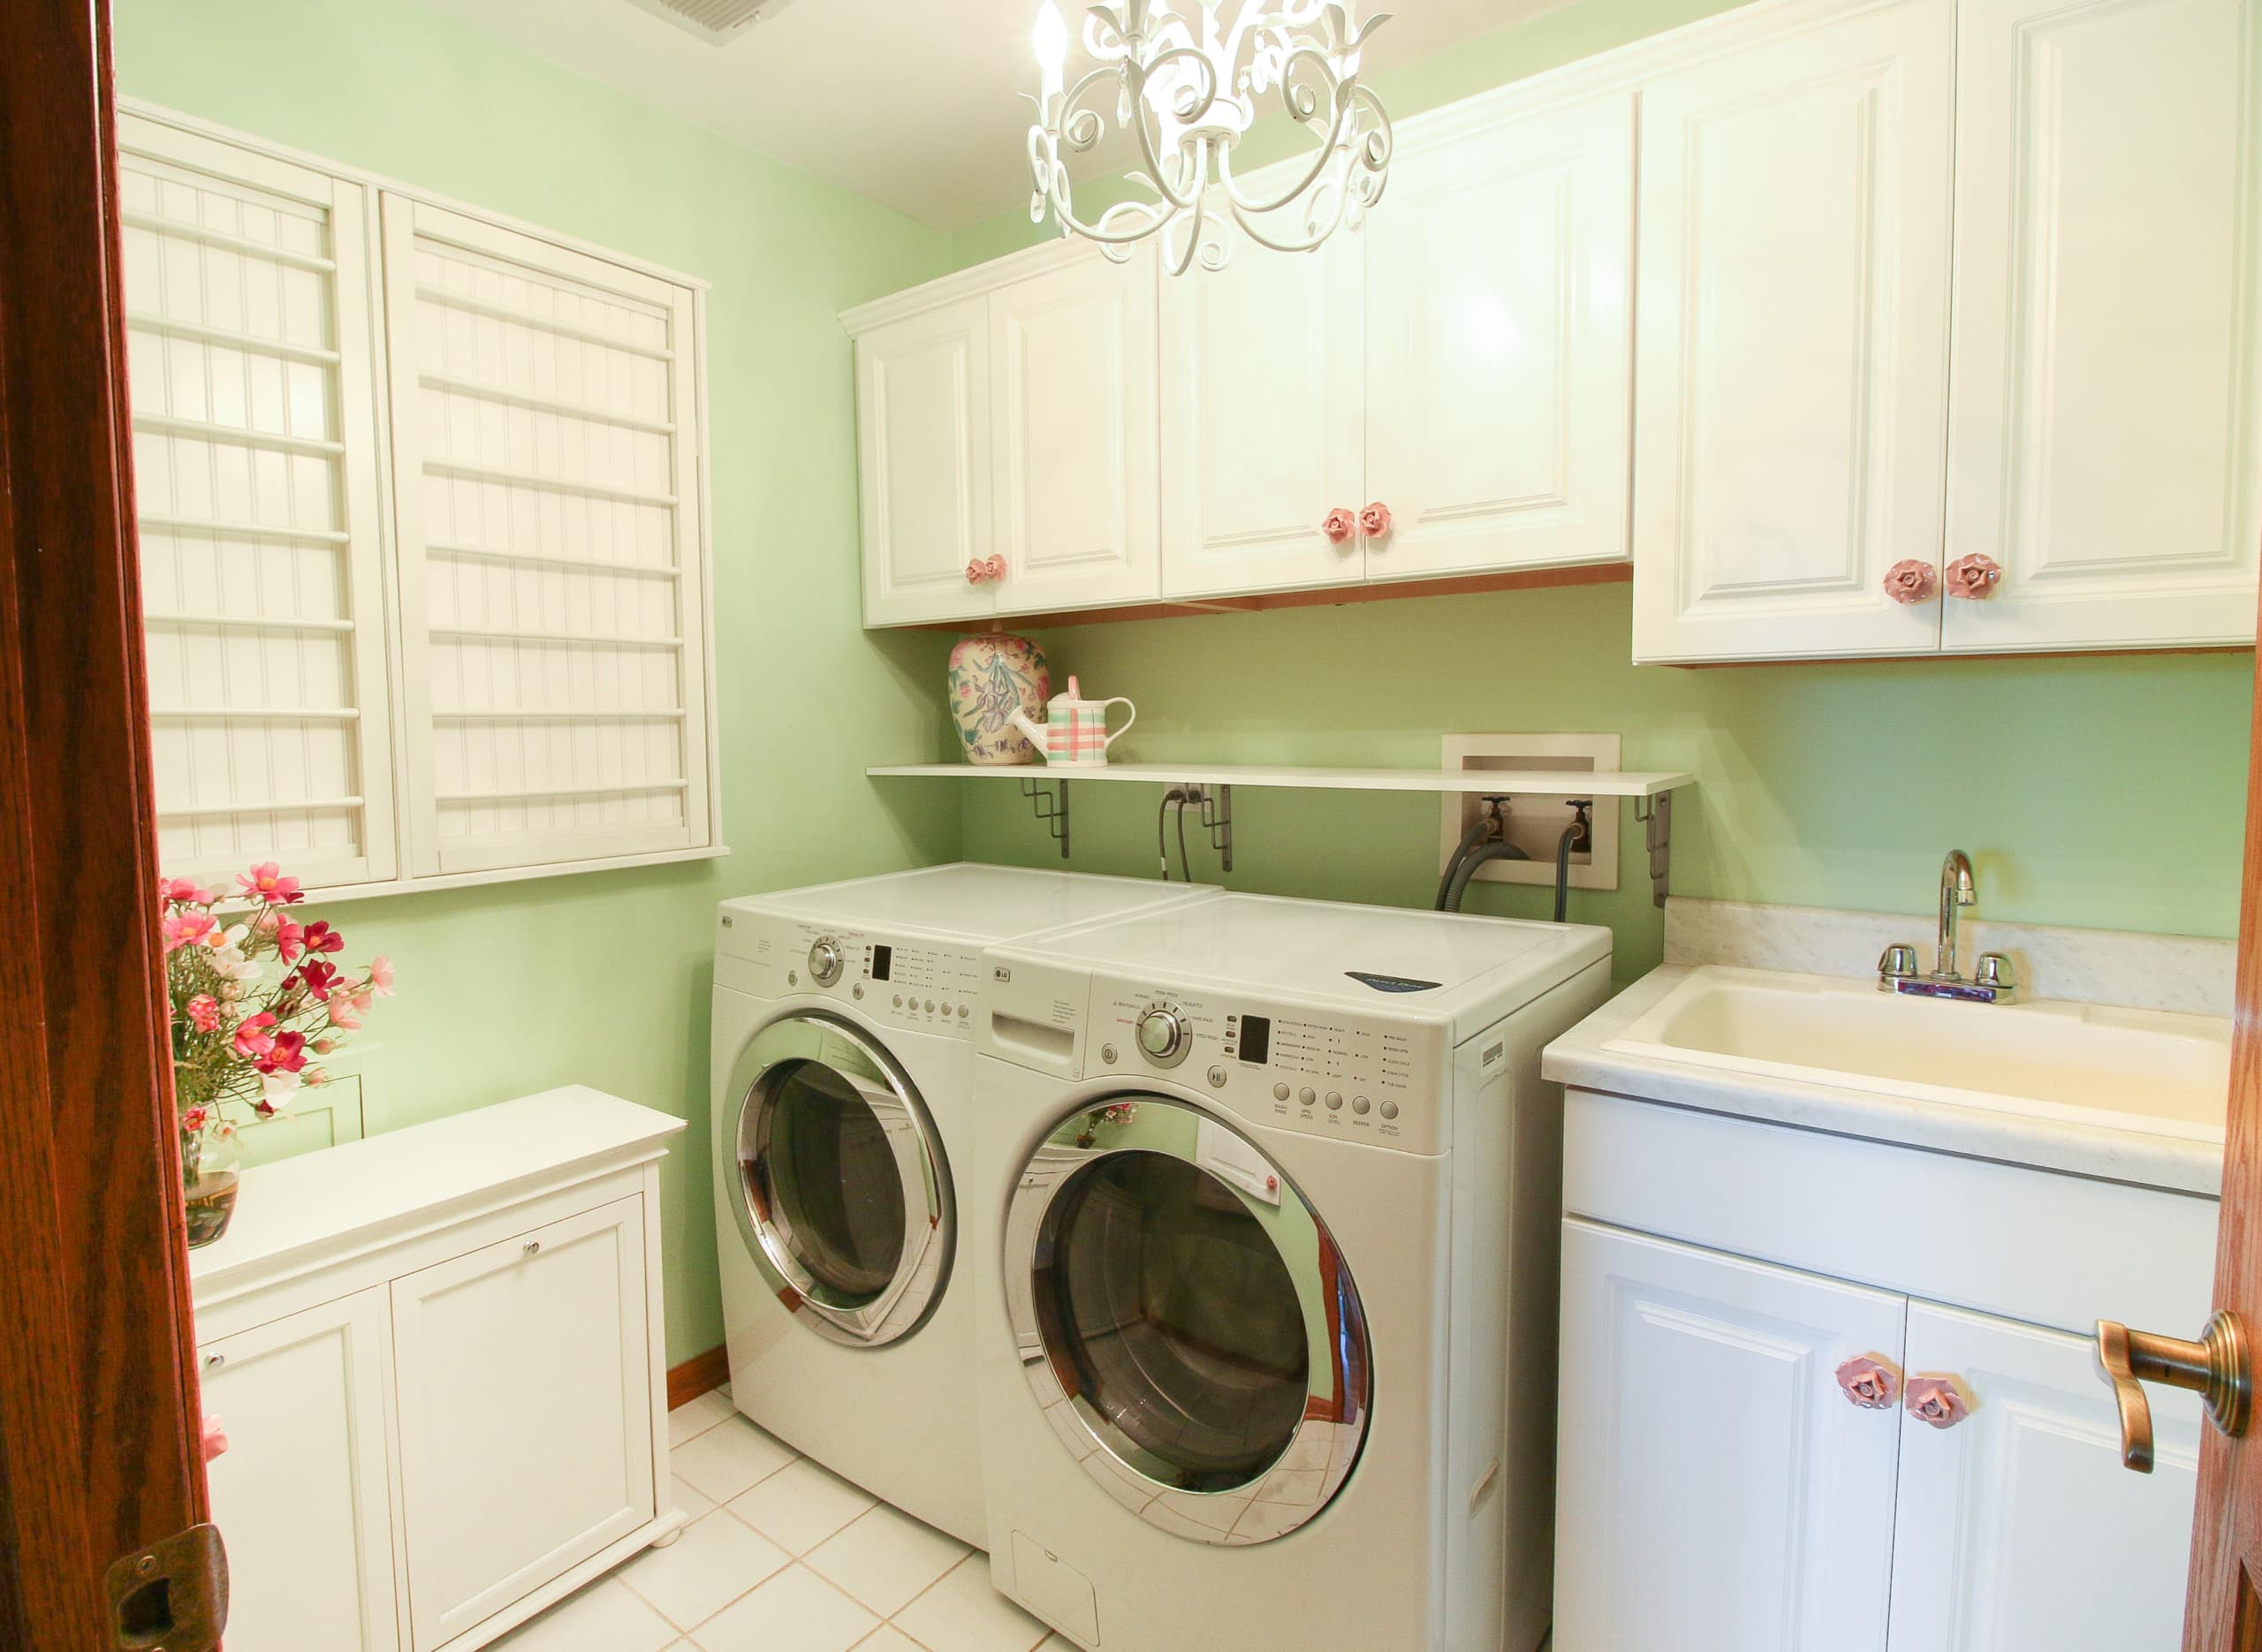 Jan's laundry room